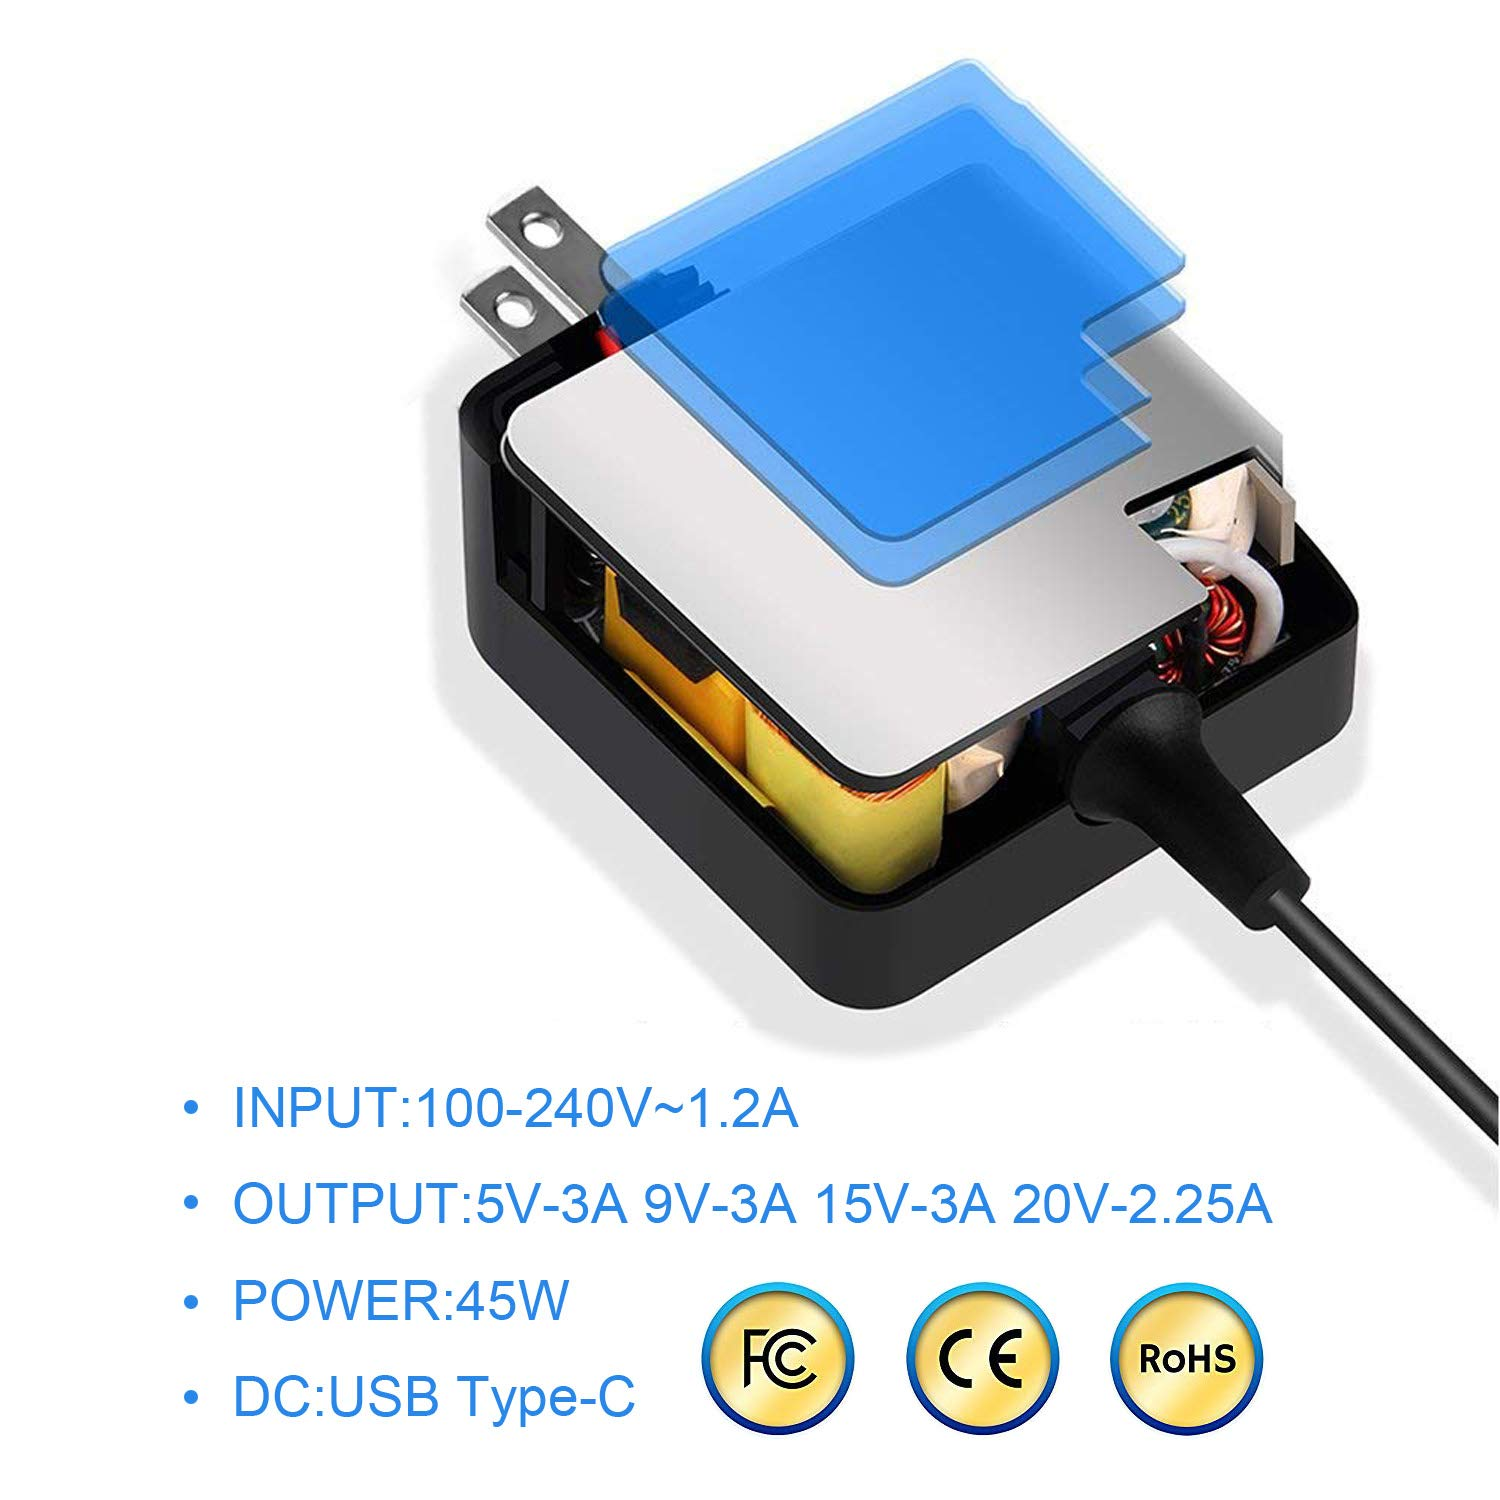 BE·SELL 20V 2.25A/45W AC Charger Adapter for Asus ADL-45A1 ADP-45EW A ADP-45EW C ADP-45XE B Asus Q325UA-BI7T18 AsusPro B9440UA-GV9102T B9440UA-GV9103T ...